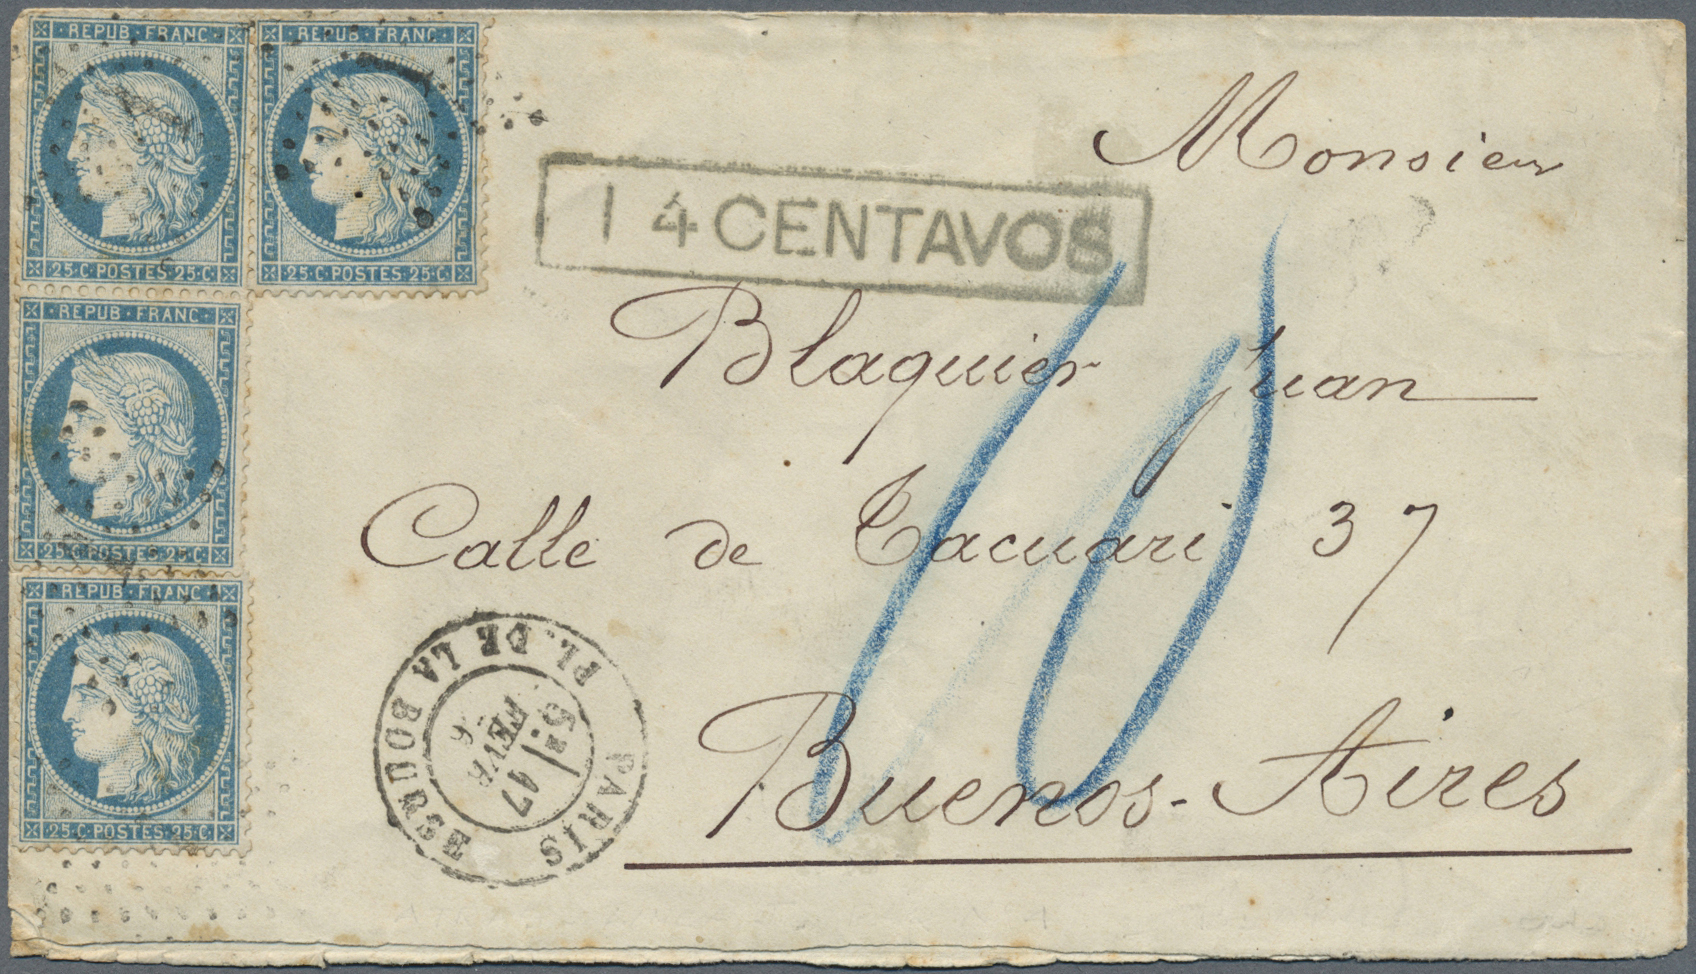 Lot 13182 - argentinien  -  Auktionshaus Christoph Gärtner GmbH & Co. KG Single lots Philately Overseas & Europe. Auction #39 Day 4